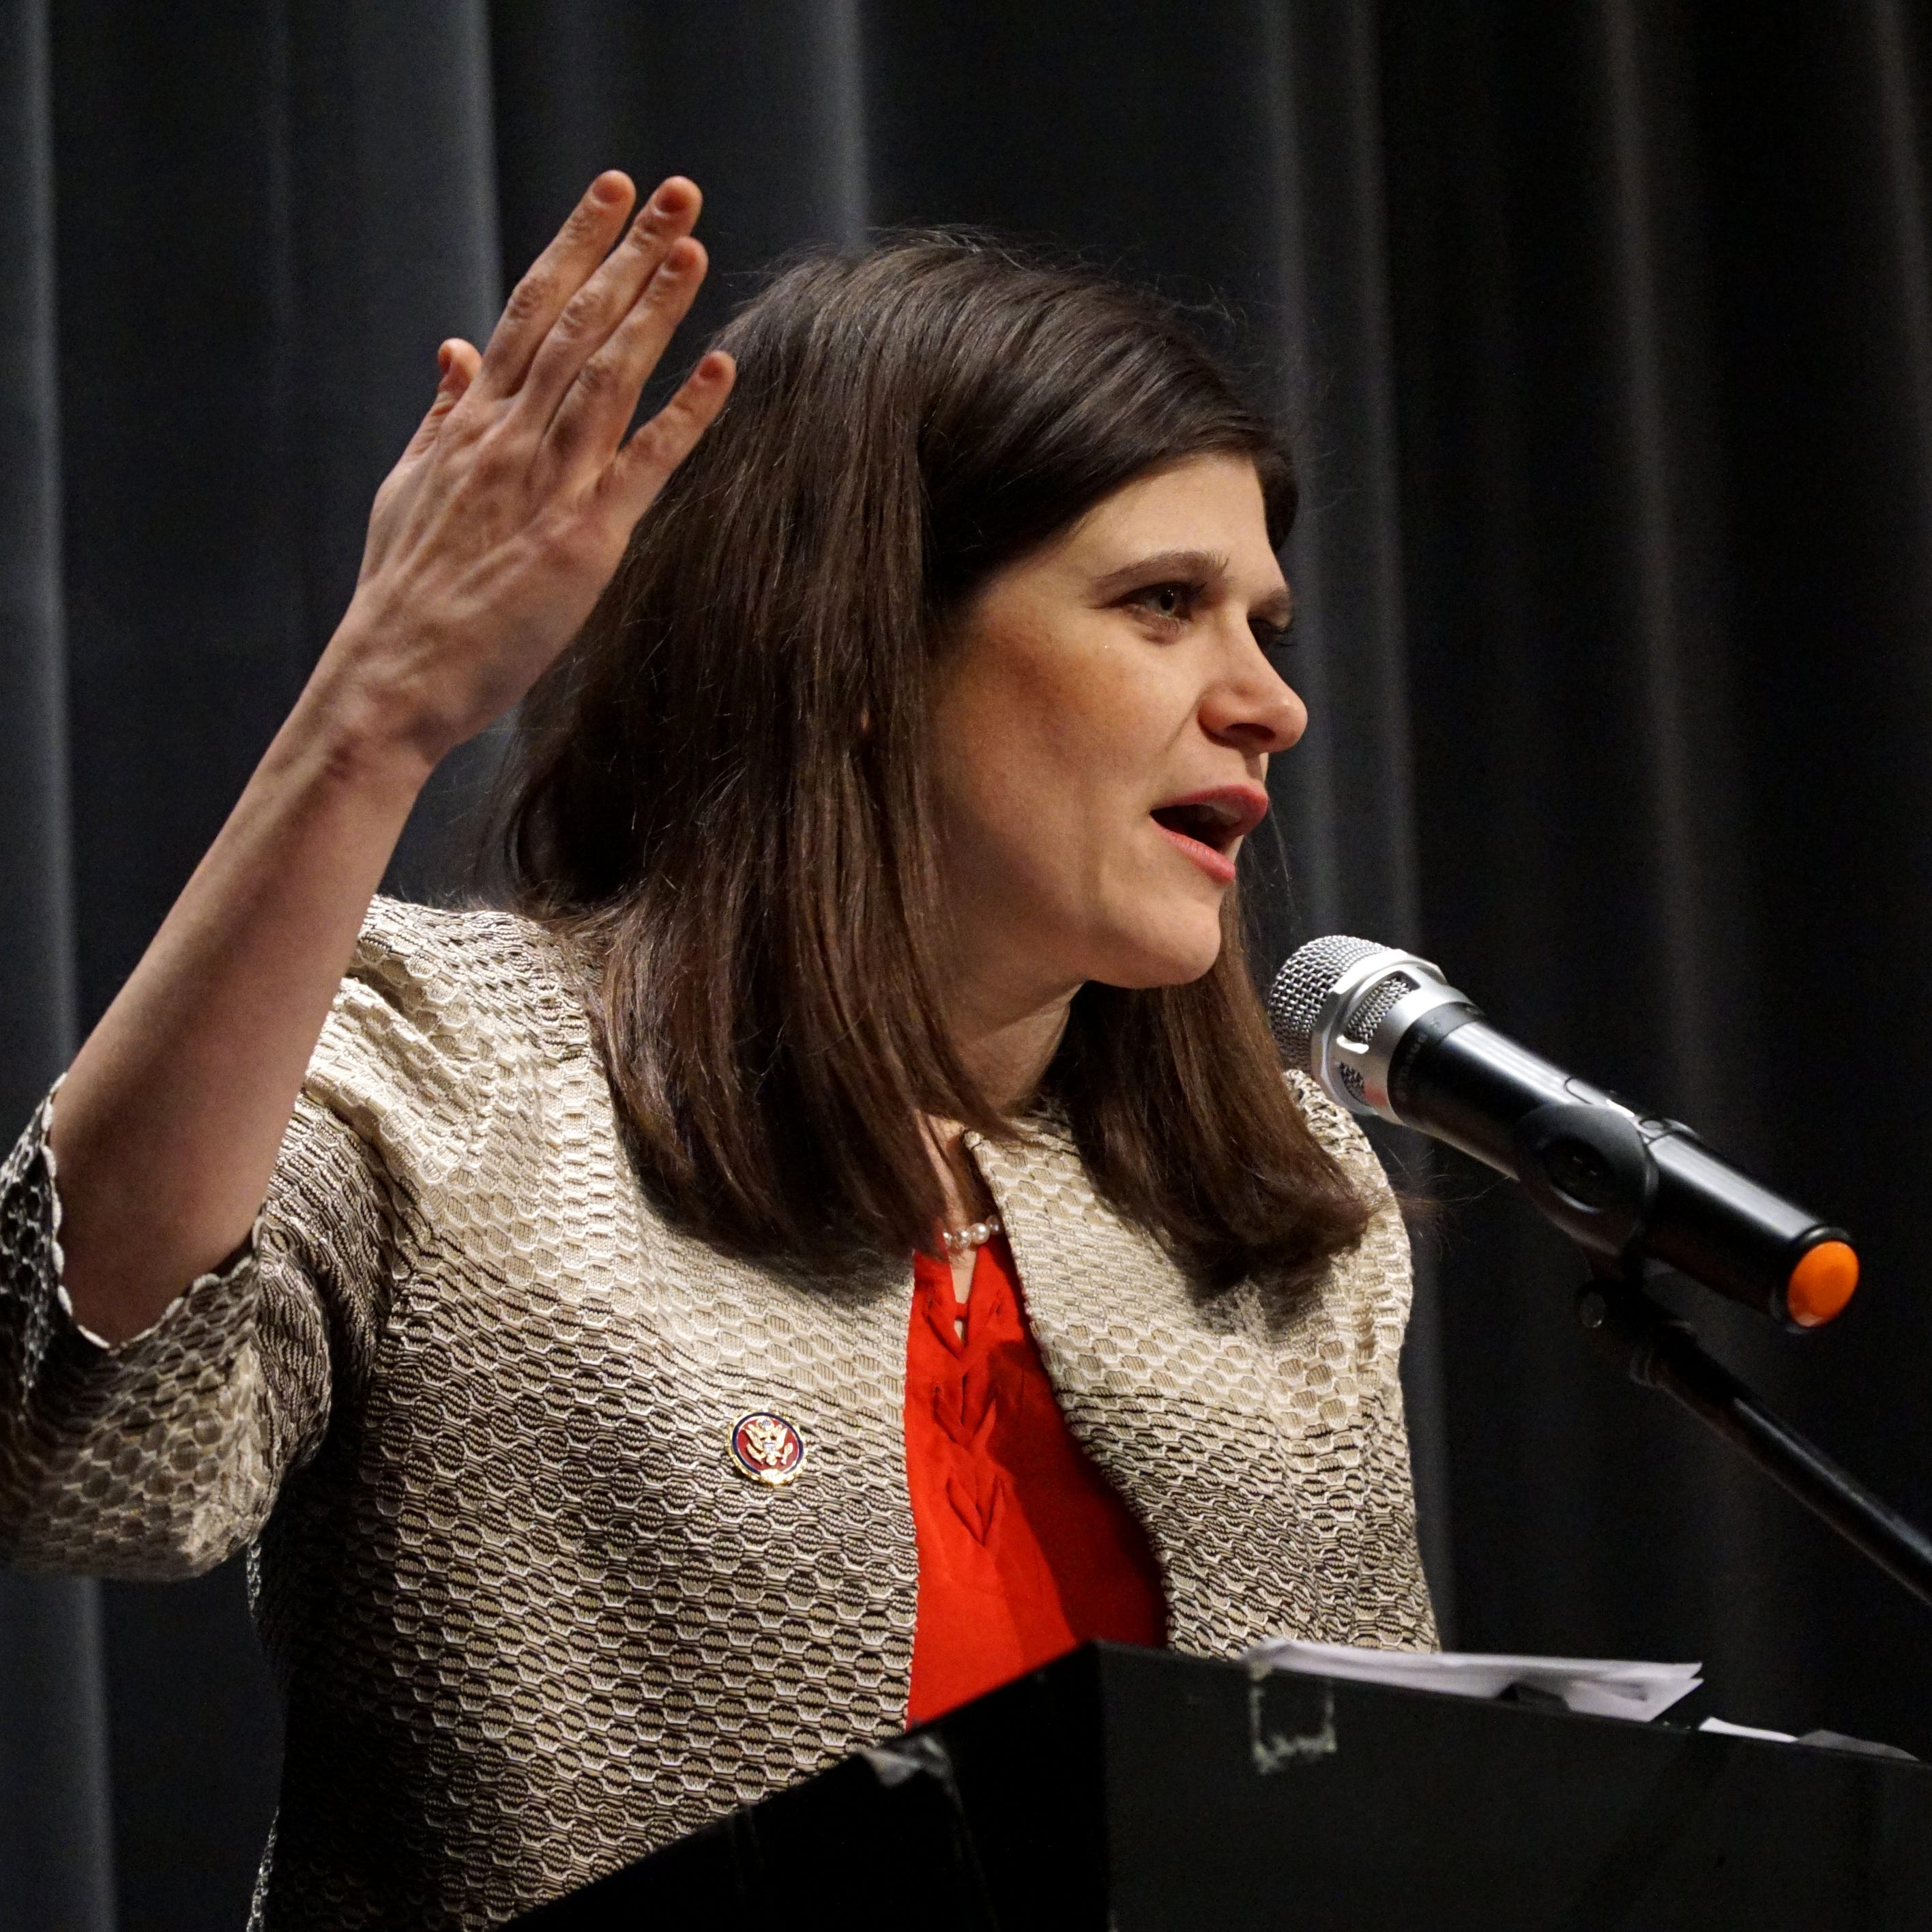 Rep. Haley Stevens at Milford town hall: 'We need to find a way to regrow the middle class'